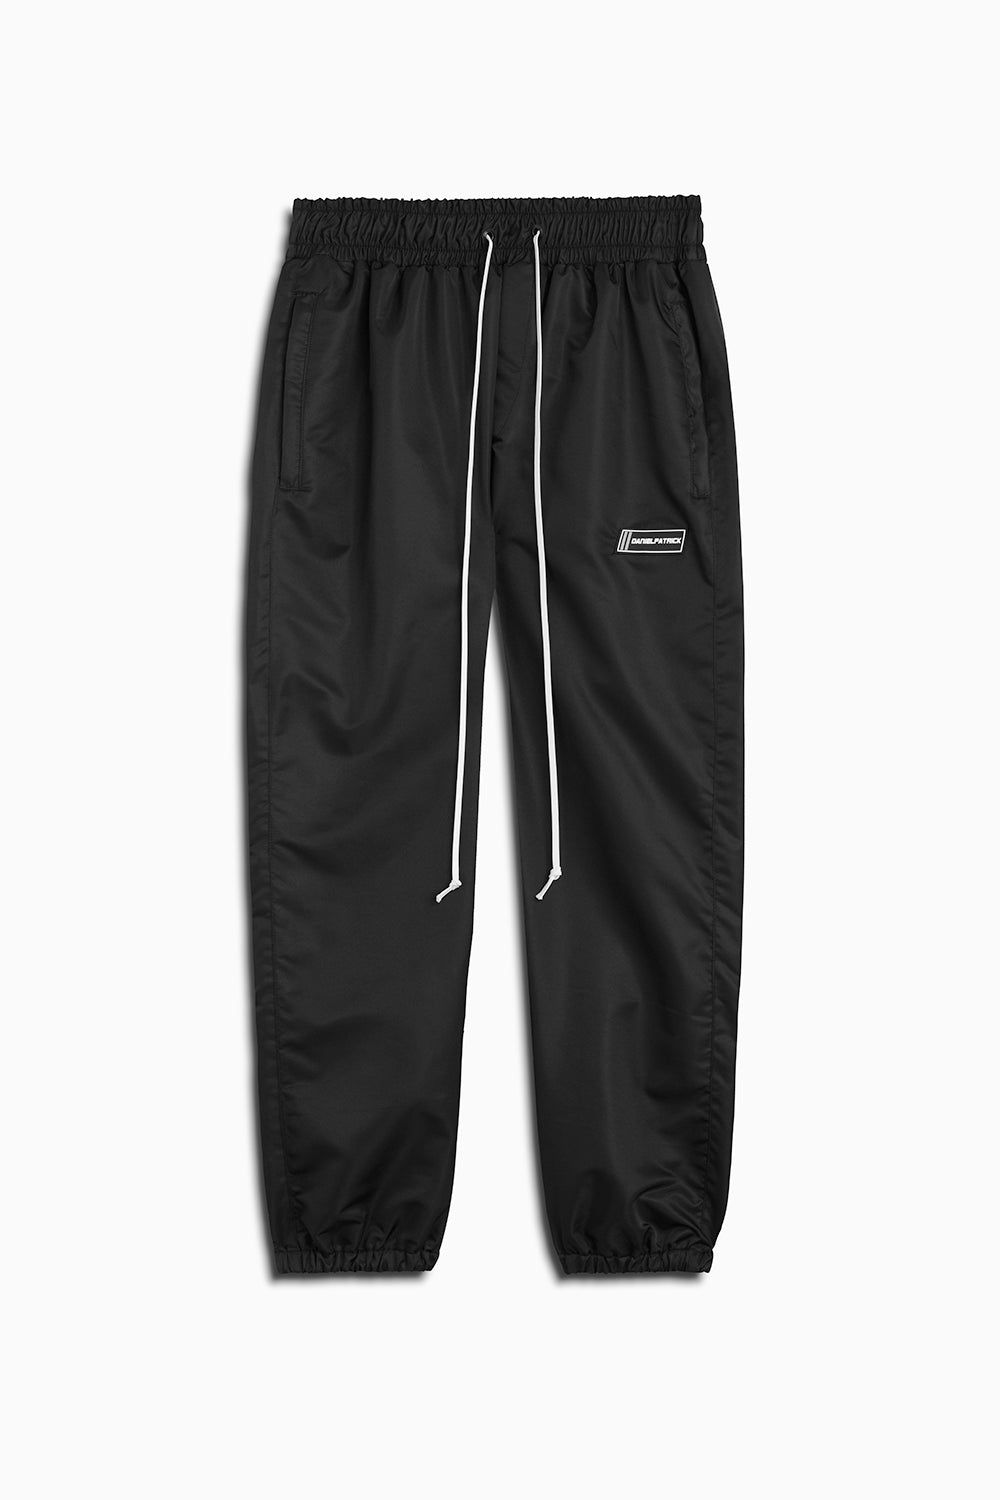 parachute track pant iv in black by daniel patrick